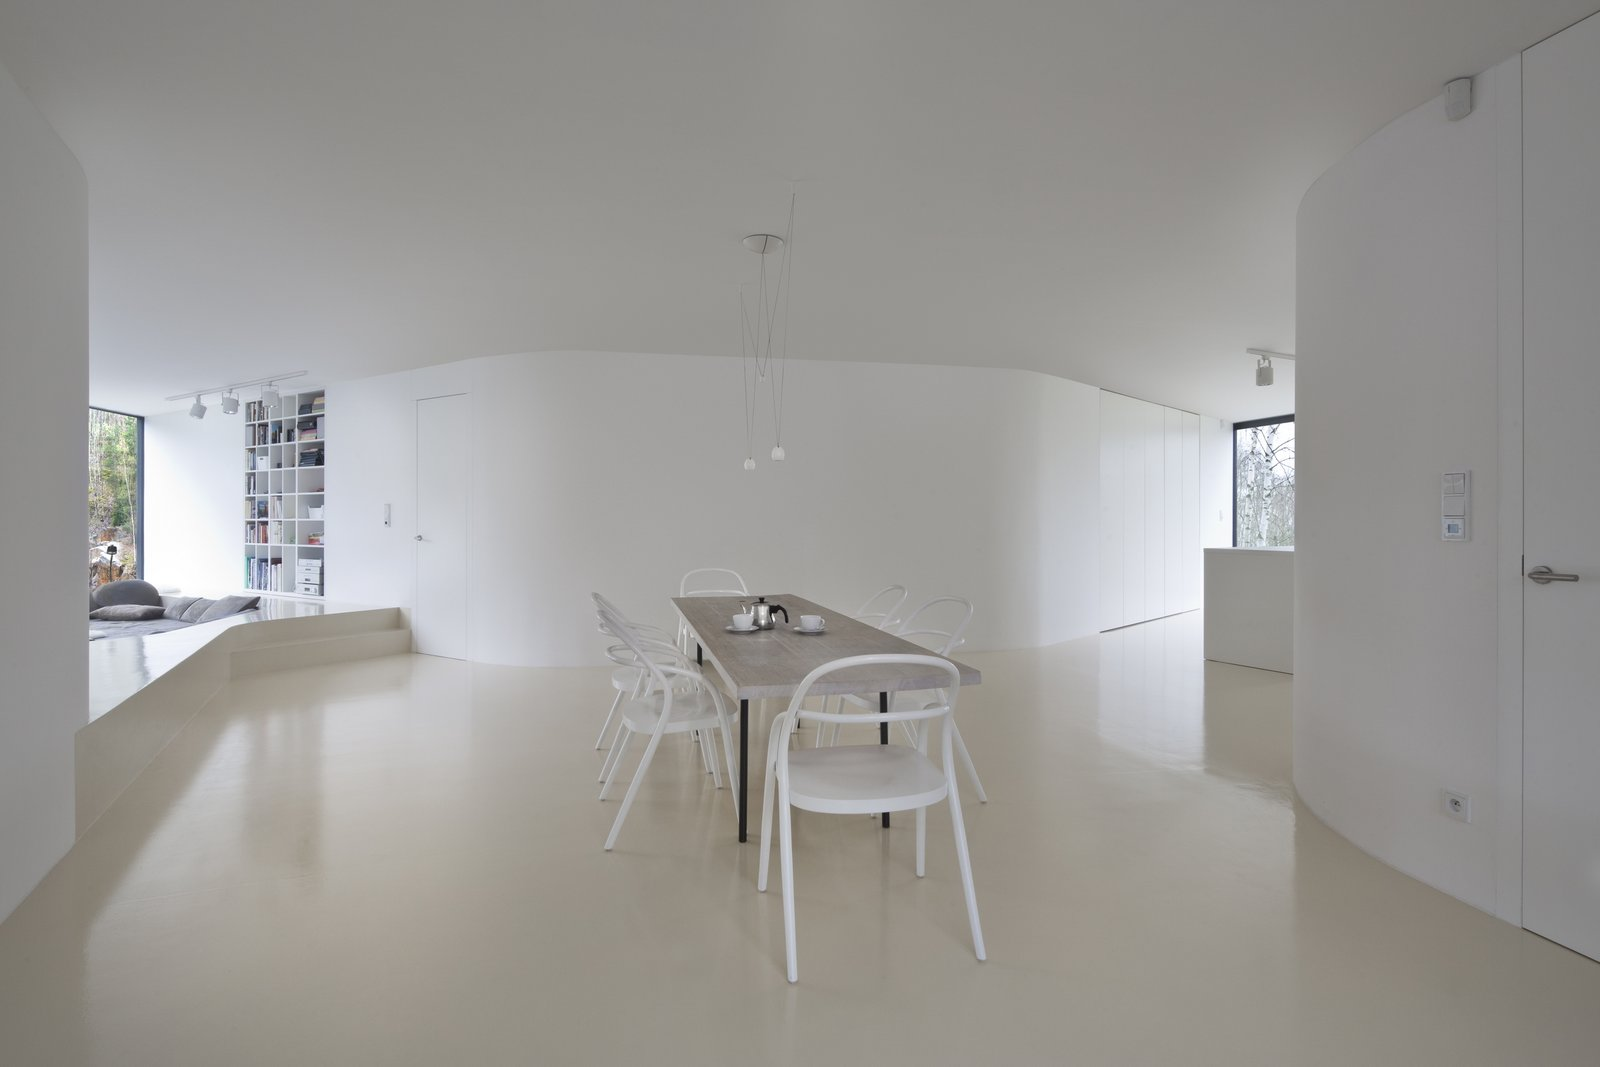 Tagged: Dining Room, Table, Shelves, Chair, and Ceiling Lighting.  Family House Prototype by Matej Šišolák